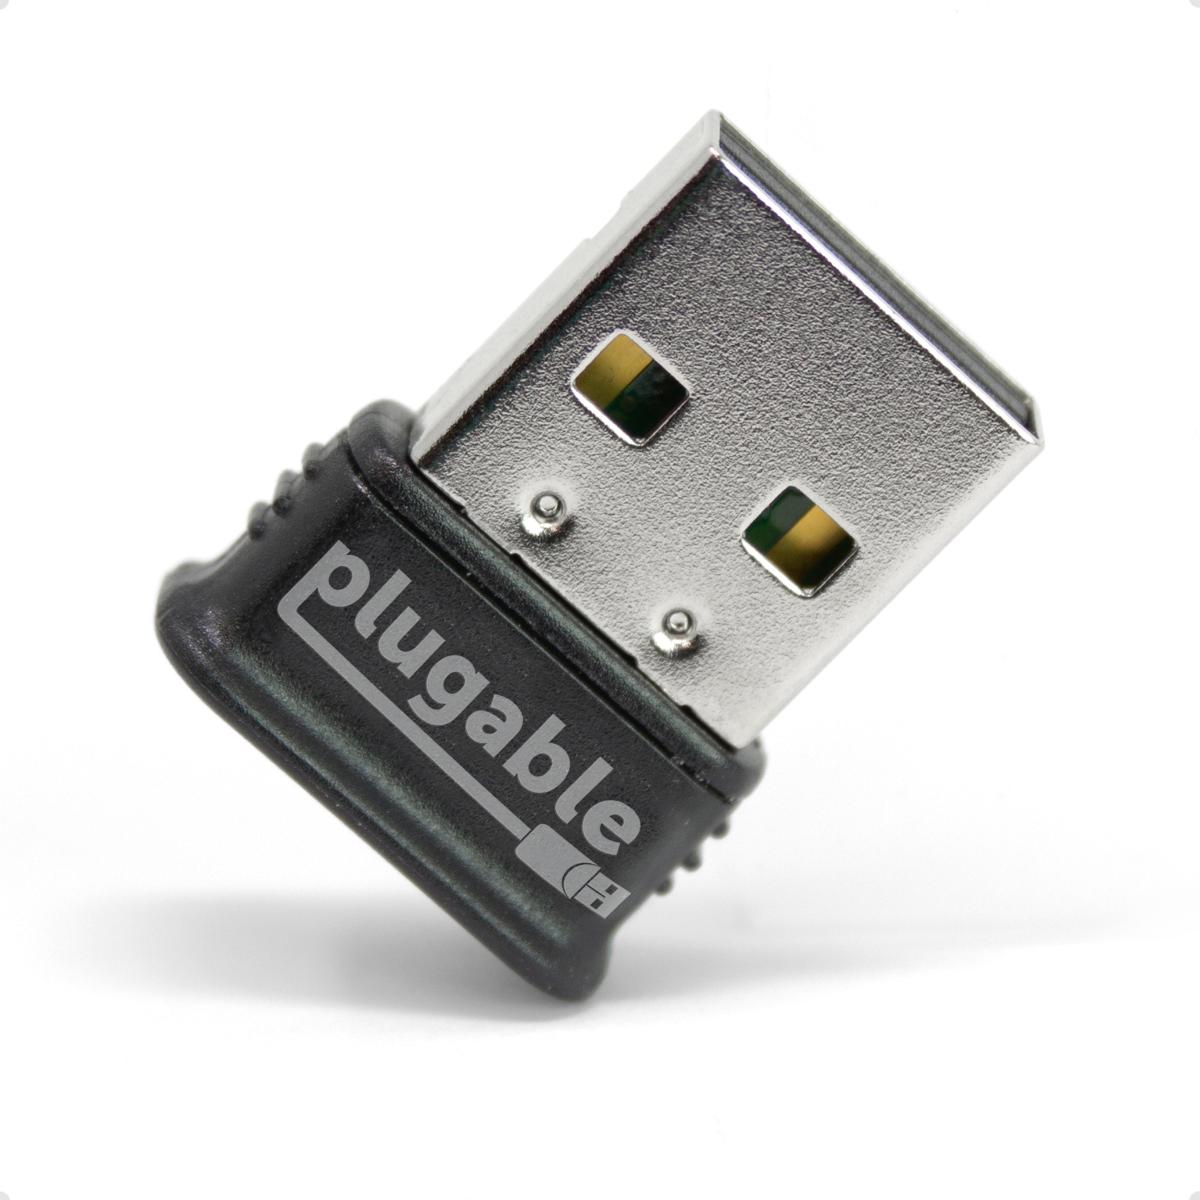 Main image for usb-bt4le